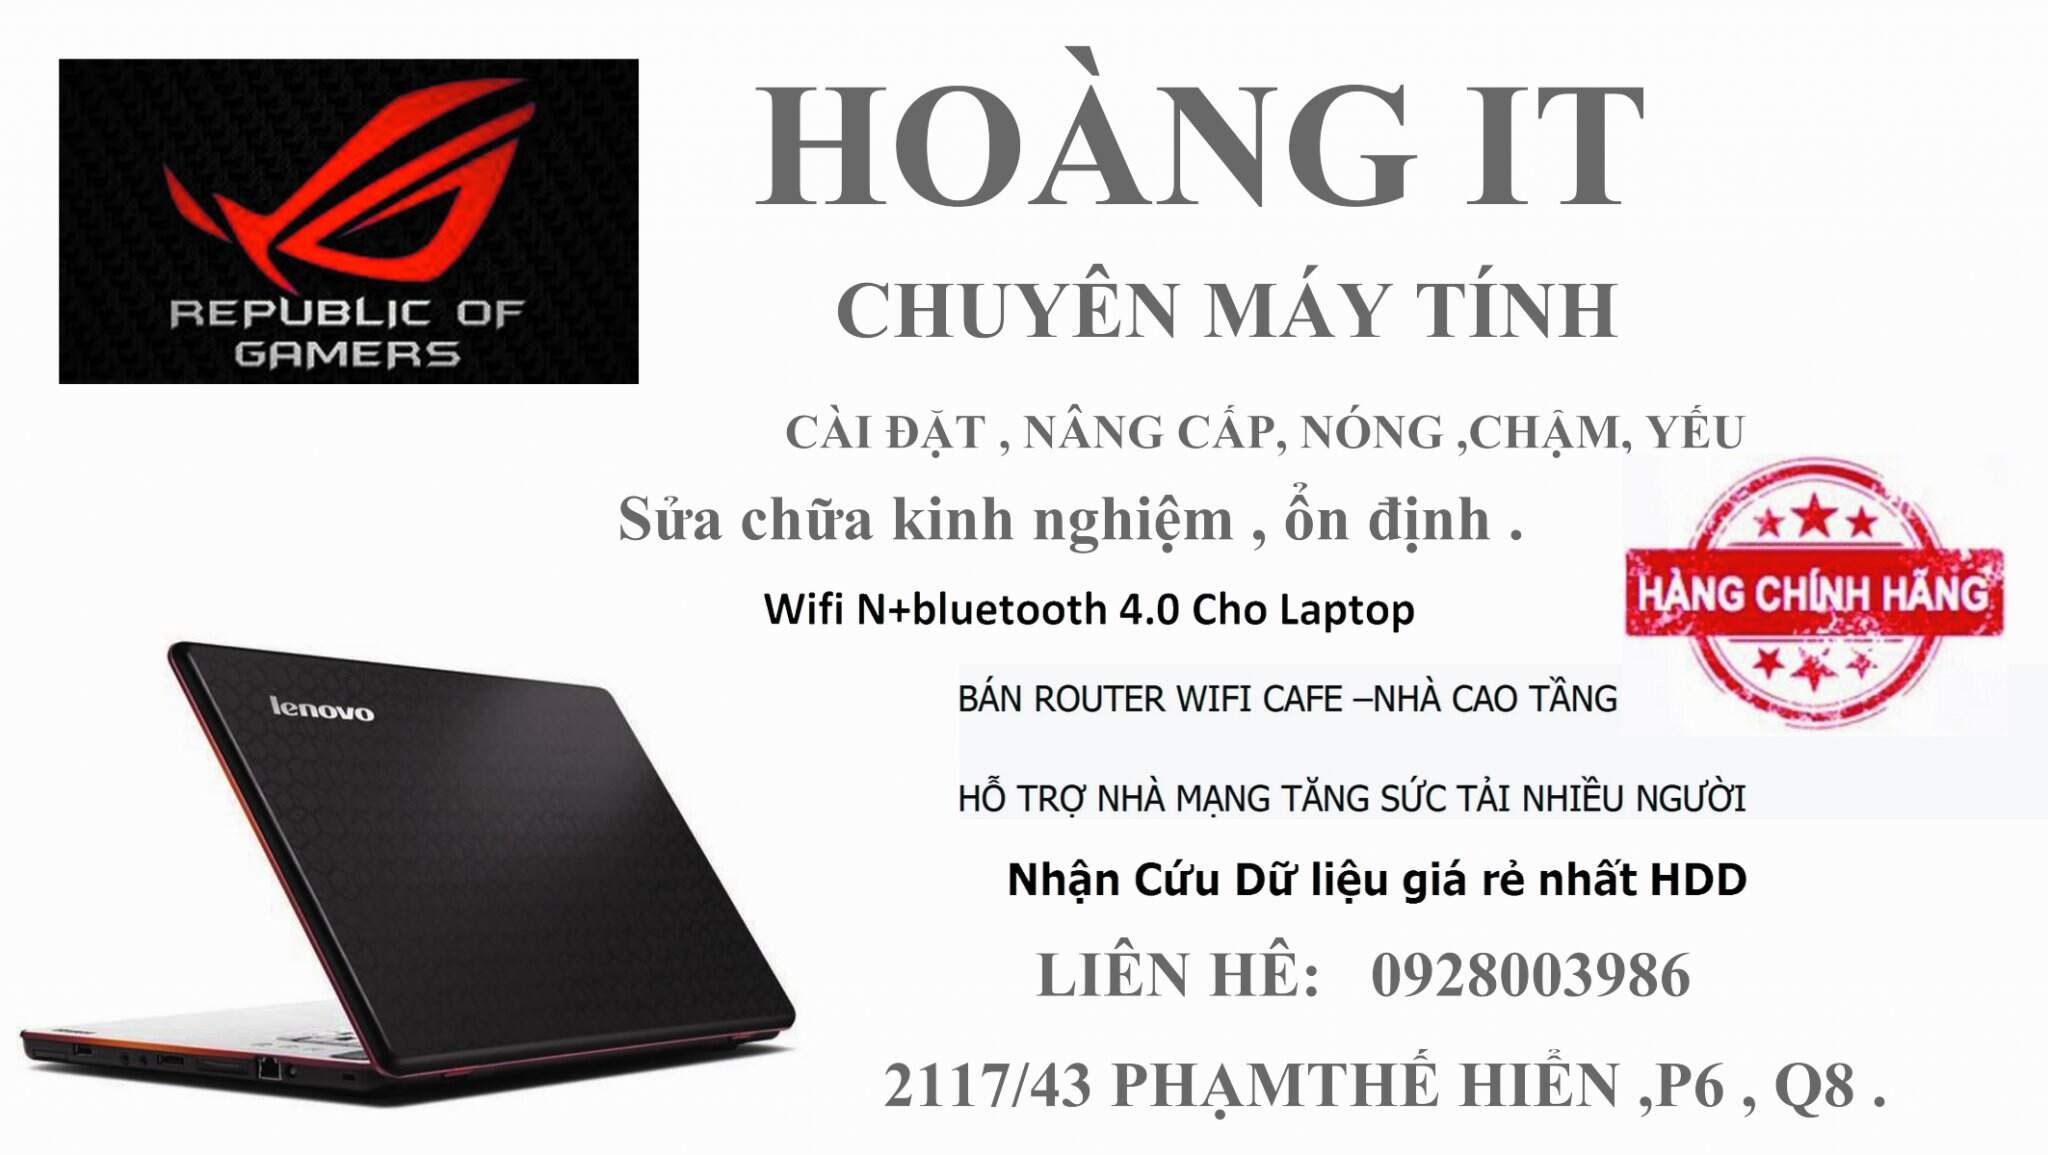 Card WIFI 5.0 Gz cho laptop XSP nhanh hơnmarketing money make online # - 6